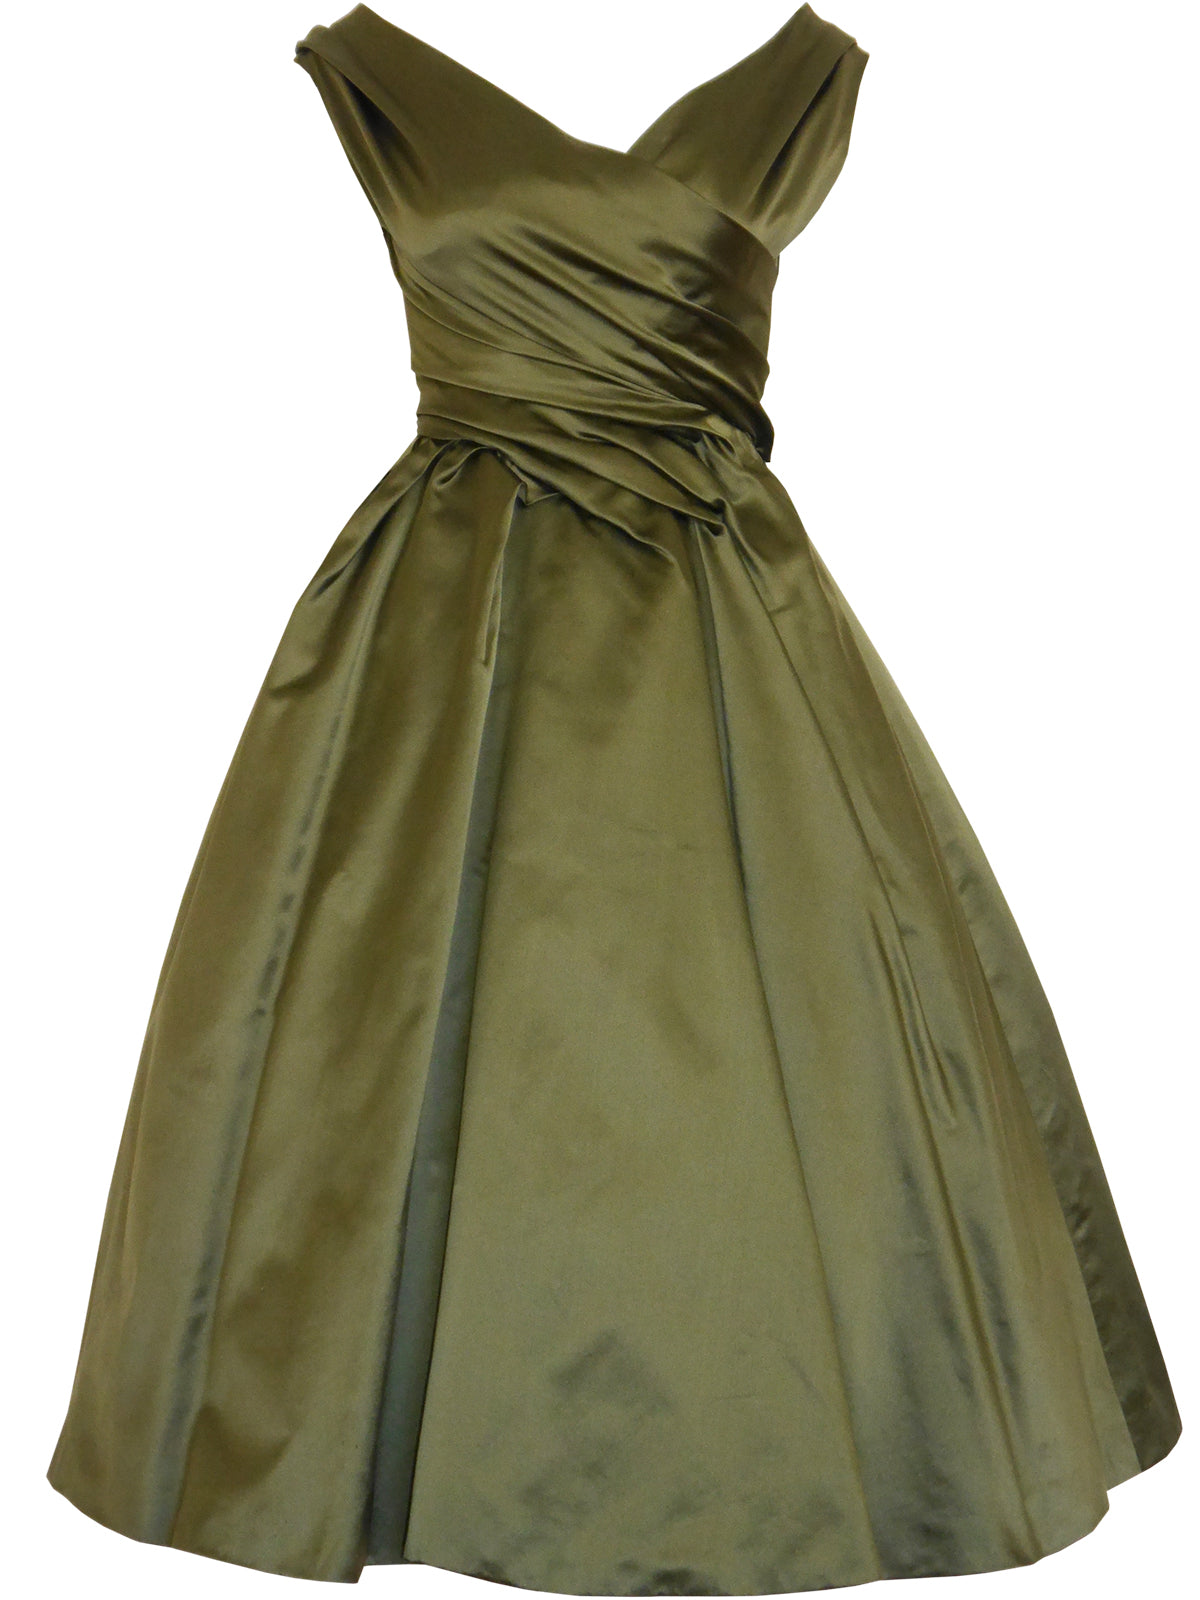 "CHRISTIAN DIOR A/W 1957/58 Haute Couture ""Venezuela"" Evening Dress Size XS"